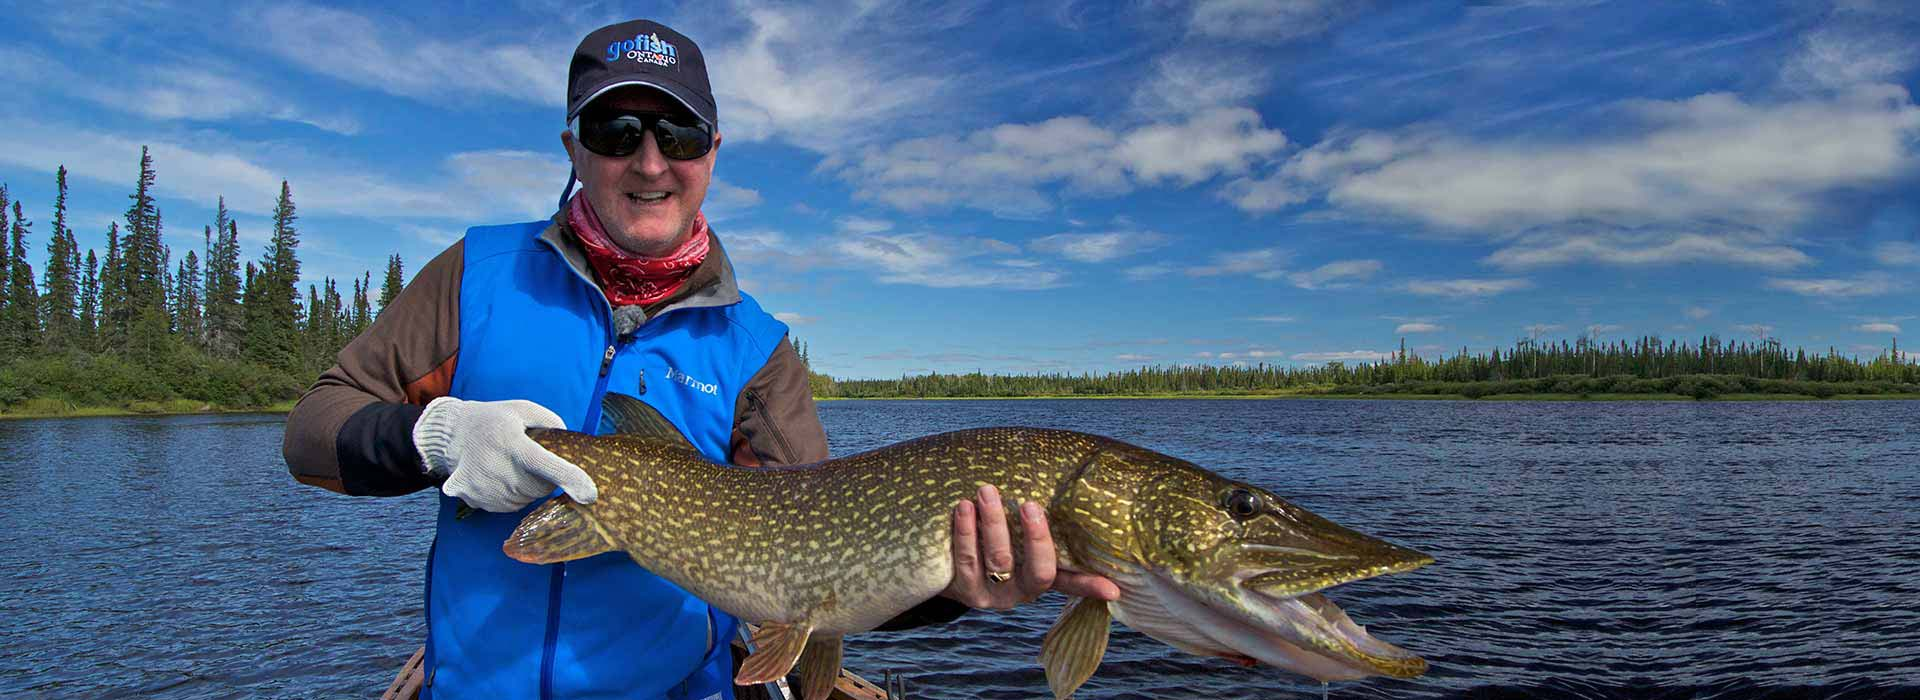 Fly fishing in northern ontario canada for Fly in fishing canada